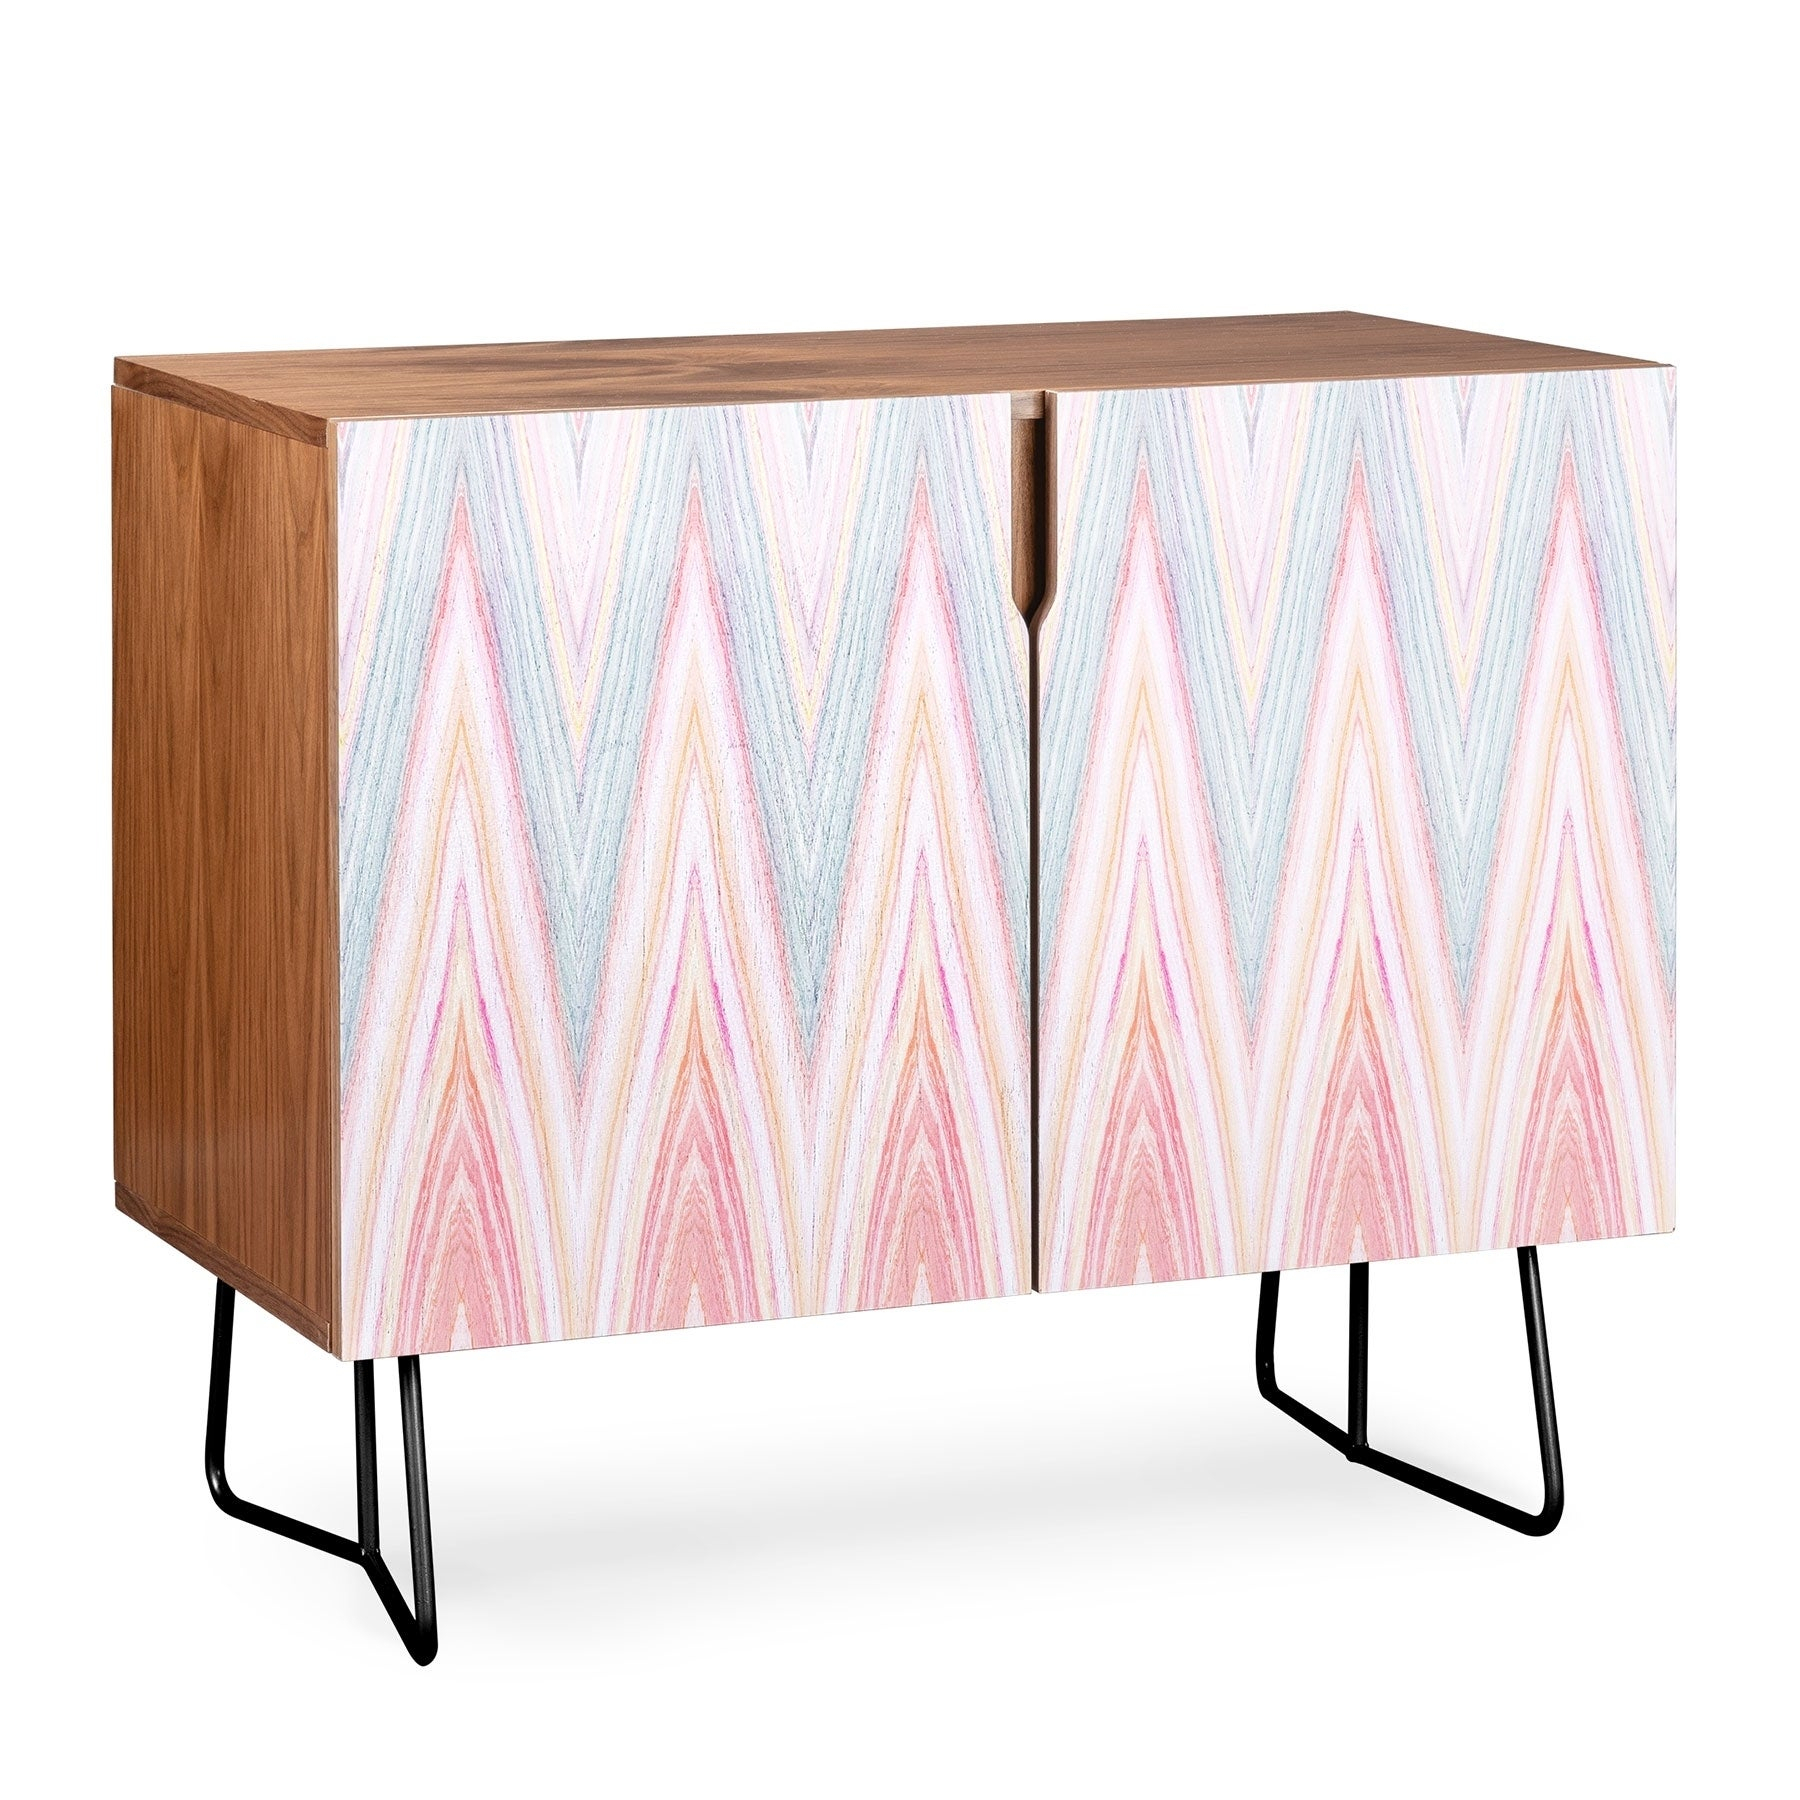 Deny Designs Agate Chevron Credenza (Birch Or Walnut, 2 Leg Options) With Regard To Oenomel Credenzas (Photo 8 of 30)